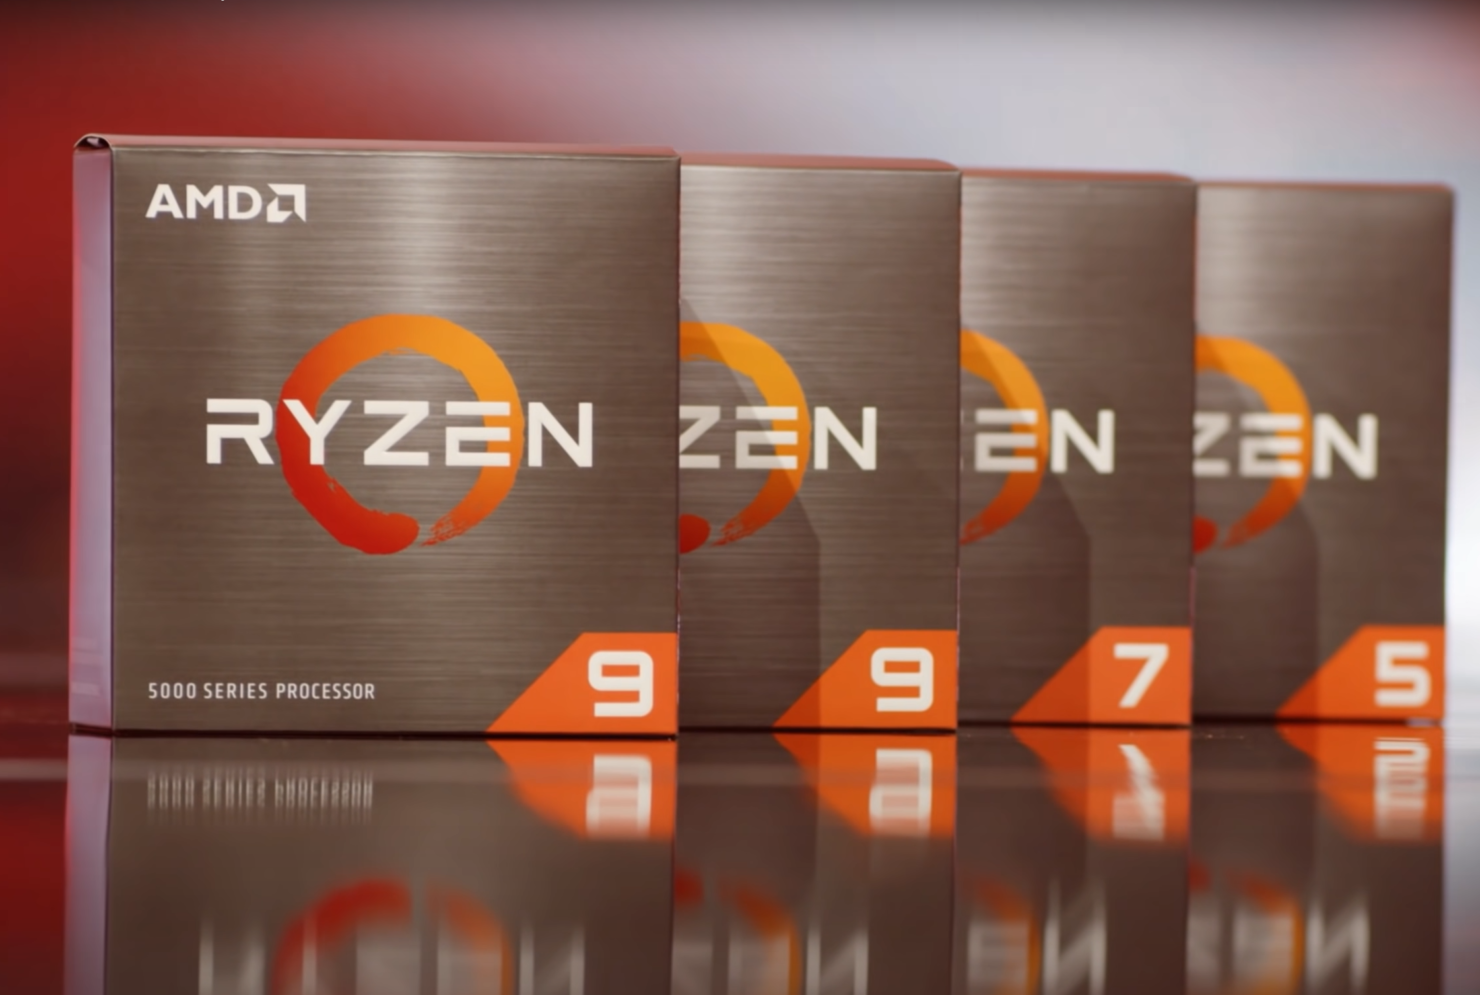 amd-ryzen-5000-desktop-cpu-supply-&-availability-to-get-better-this-quarter-as-company-reportedly-increasing-supply-by-20%